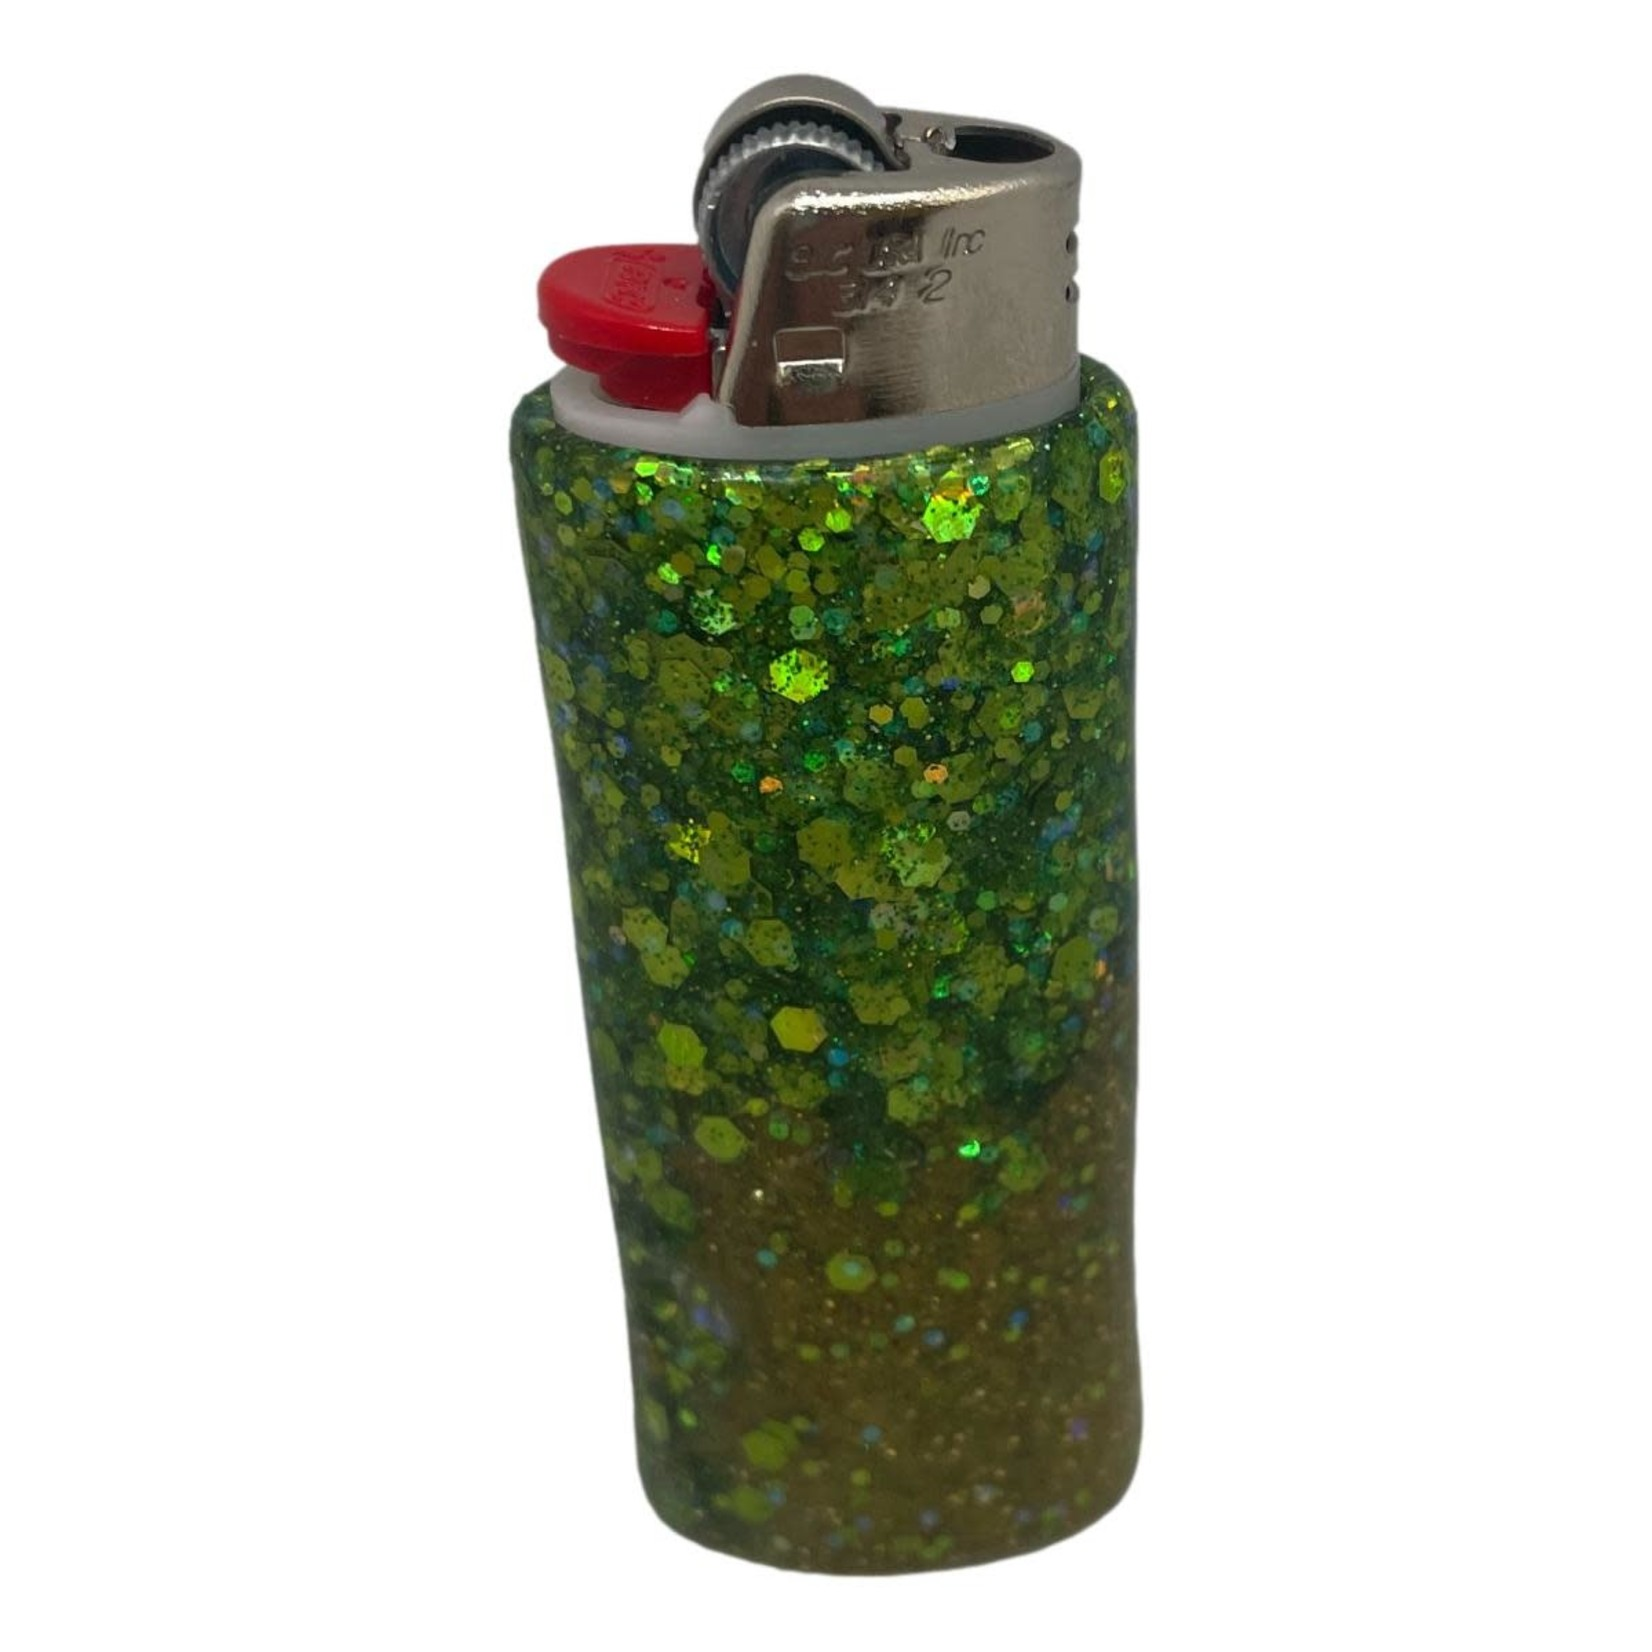 East Coast Sirens Two-Tone Green Lighter Case (Small)